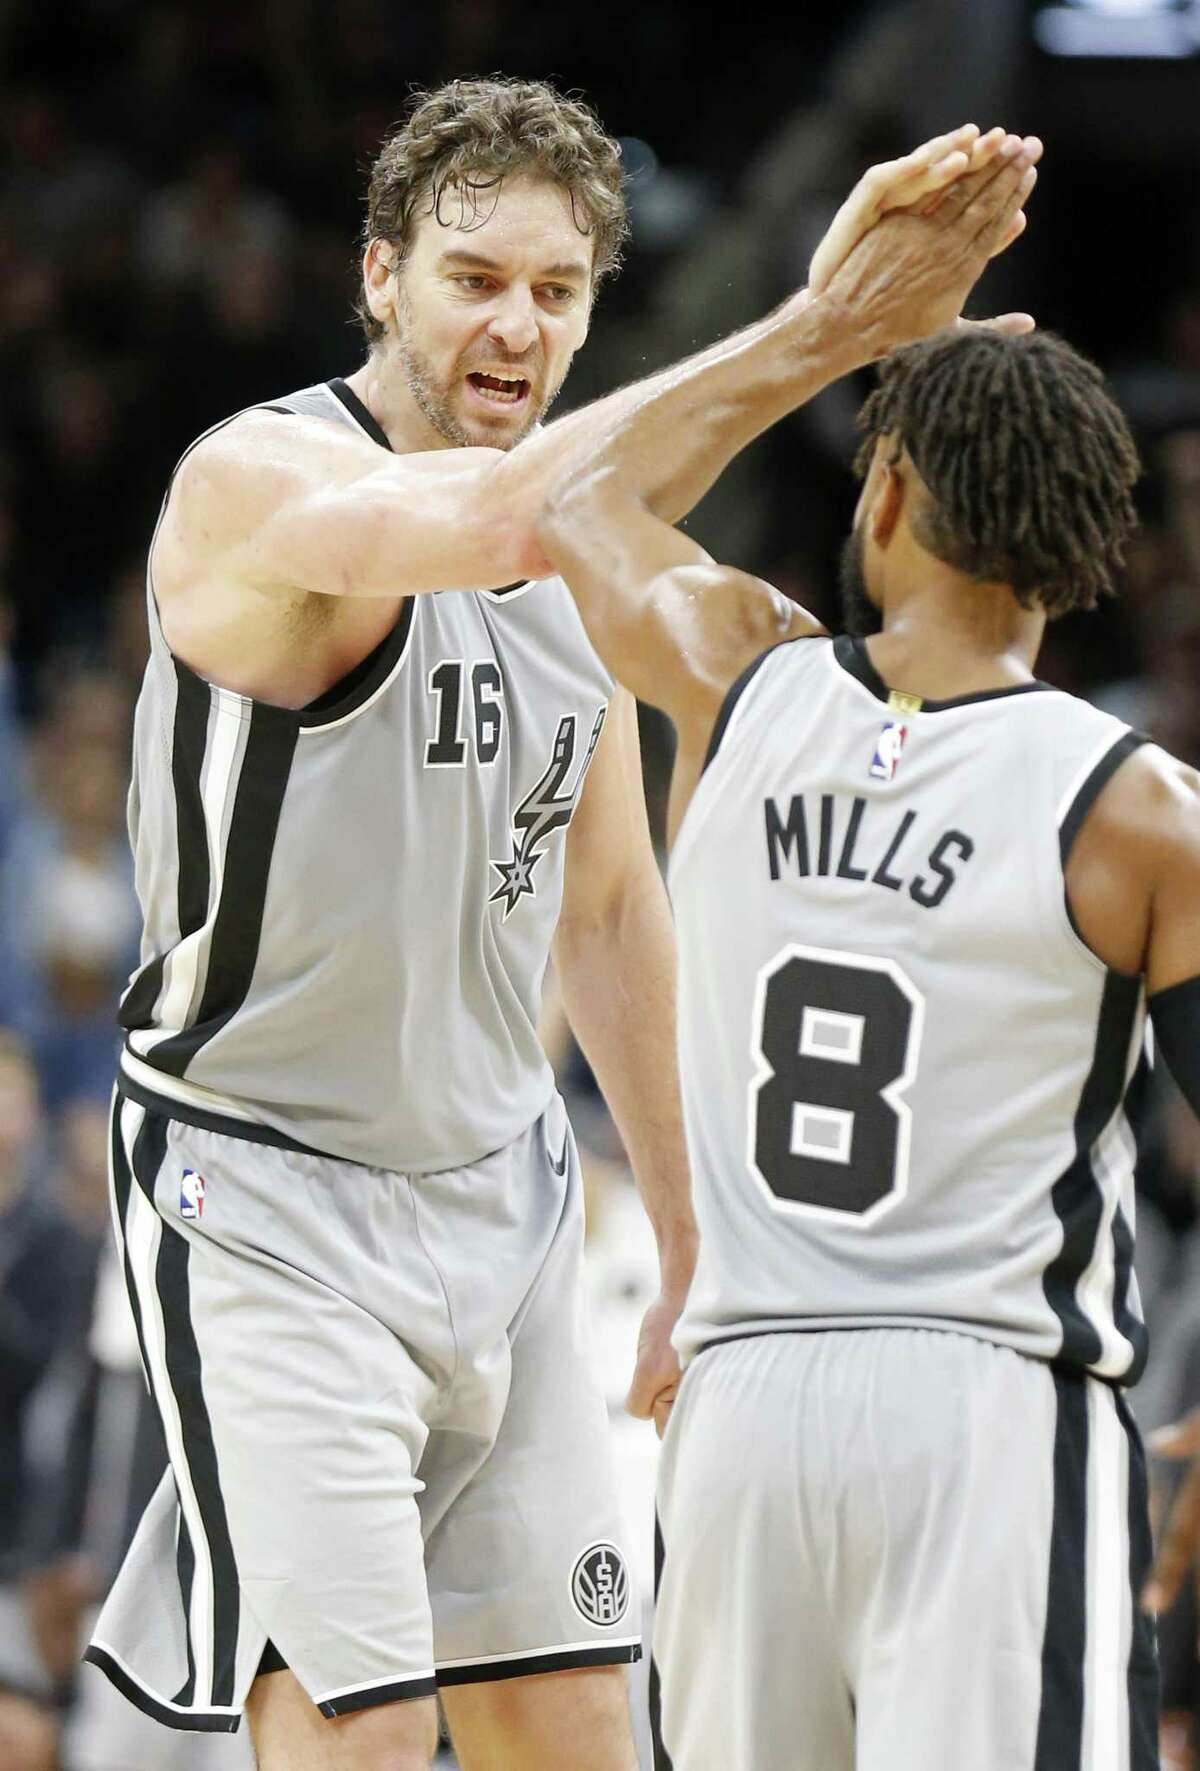 """Paul Gasol, left, was called a """"world-class professional"""" by Patty Mills. """"He has been that throughout his whole career, and he provided that and much more throughout his time in San Antonio,"""" Mills said. """"He was a great role model to our young guys."""" Gasol is expected to sign with the Bucks after clearing waivers."""